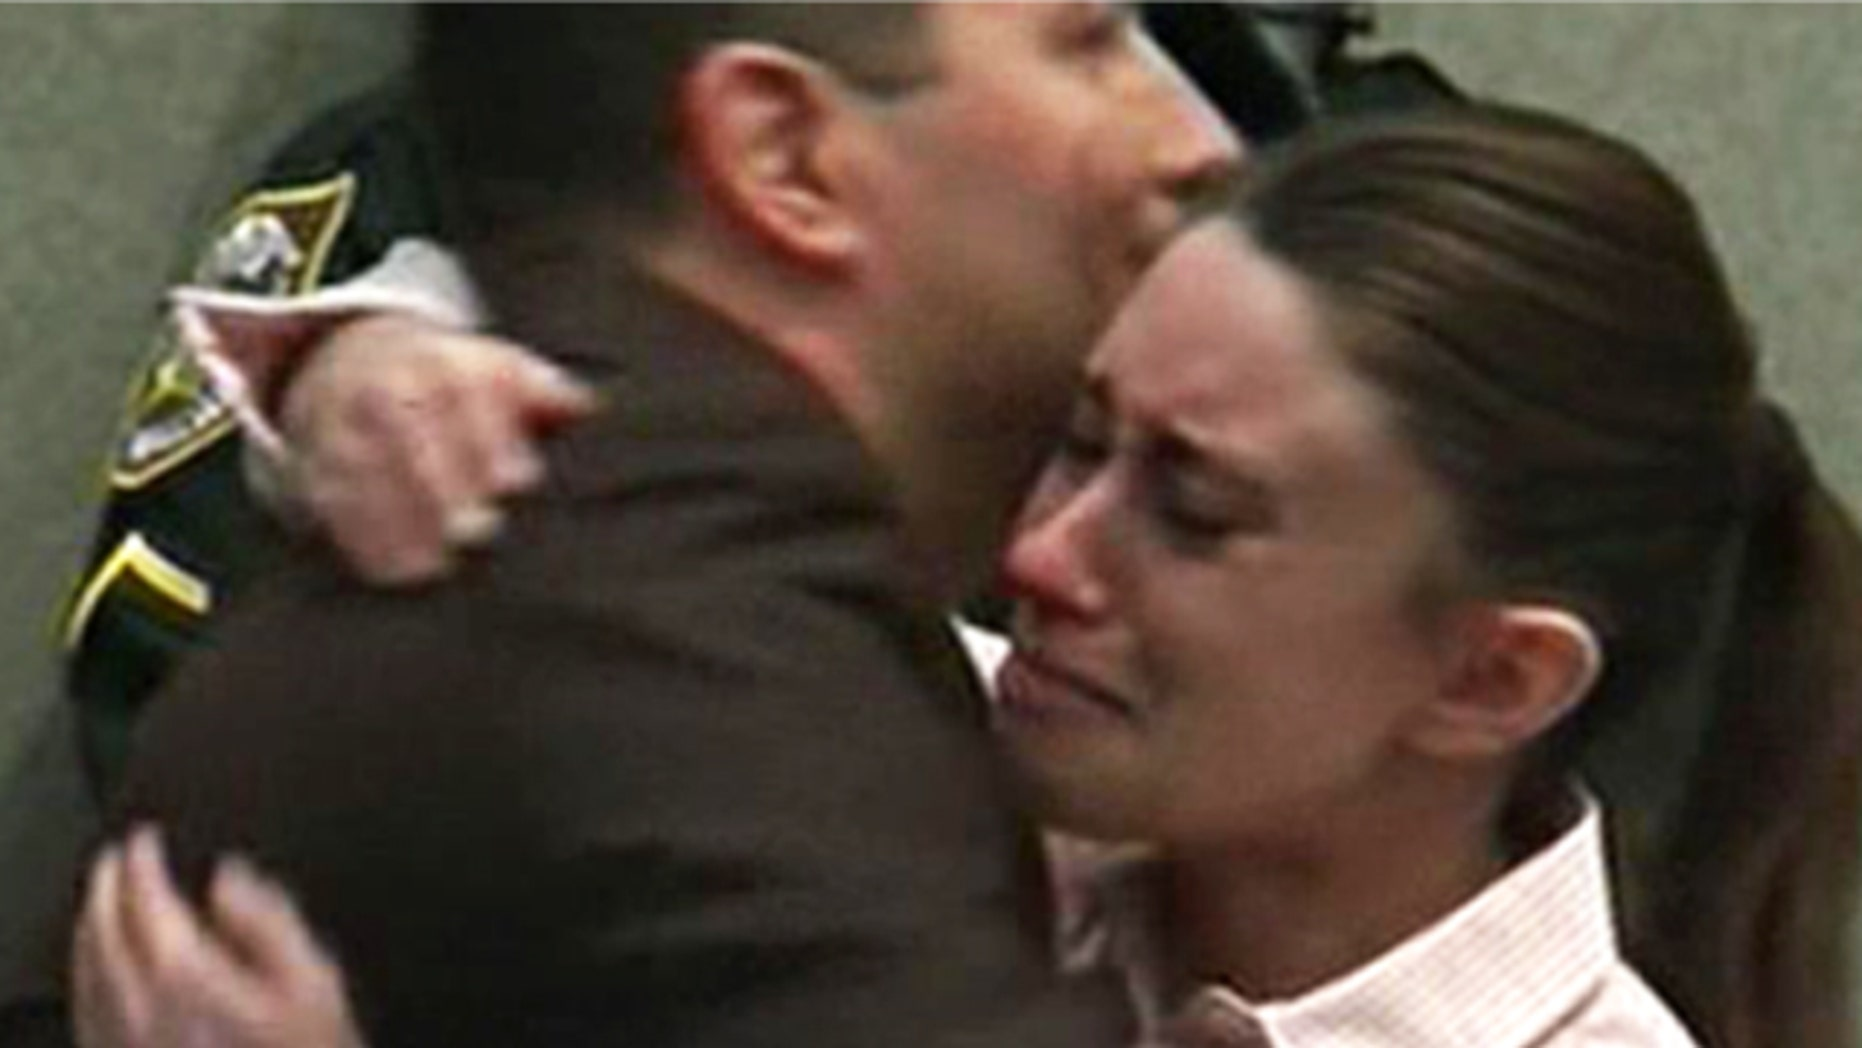 July 5: Casey Anthony hugs her attorney, Jose Baez, after hearing a jury clear her of killing her 2-year-old daughter, Caylee.